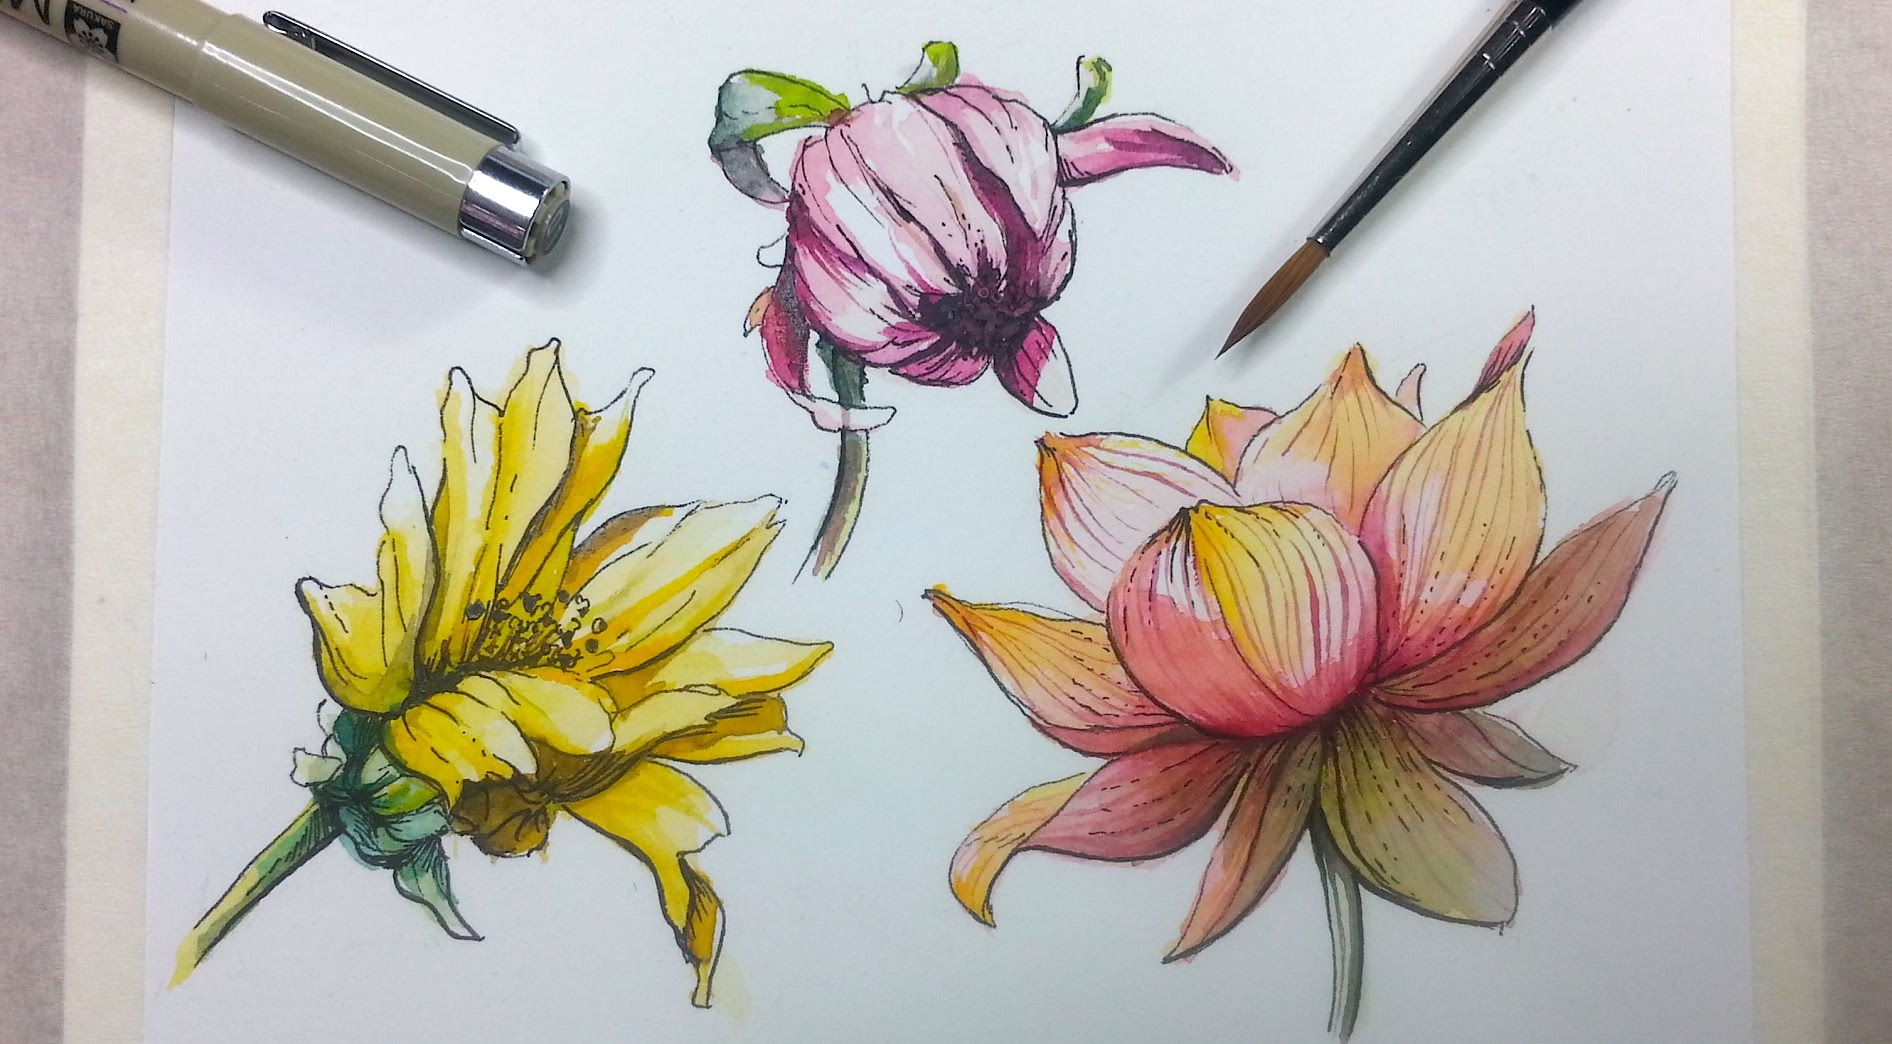 1892x1044 How To Draw Amp Paint Flowers With Ink And Watercolor Part 2